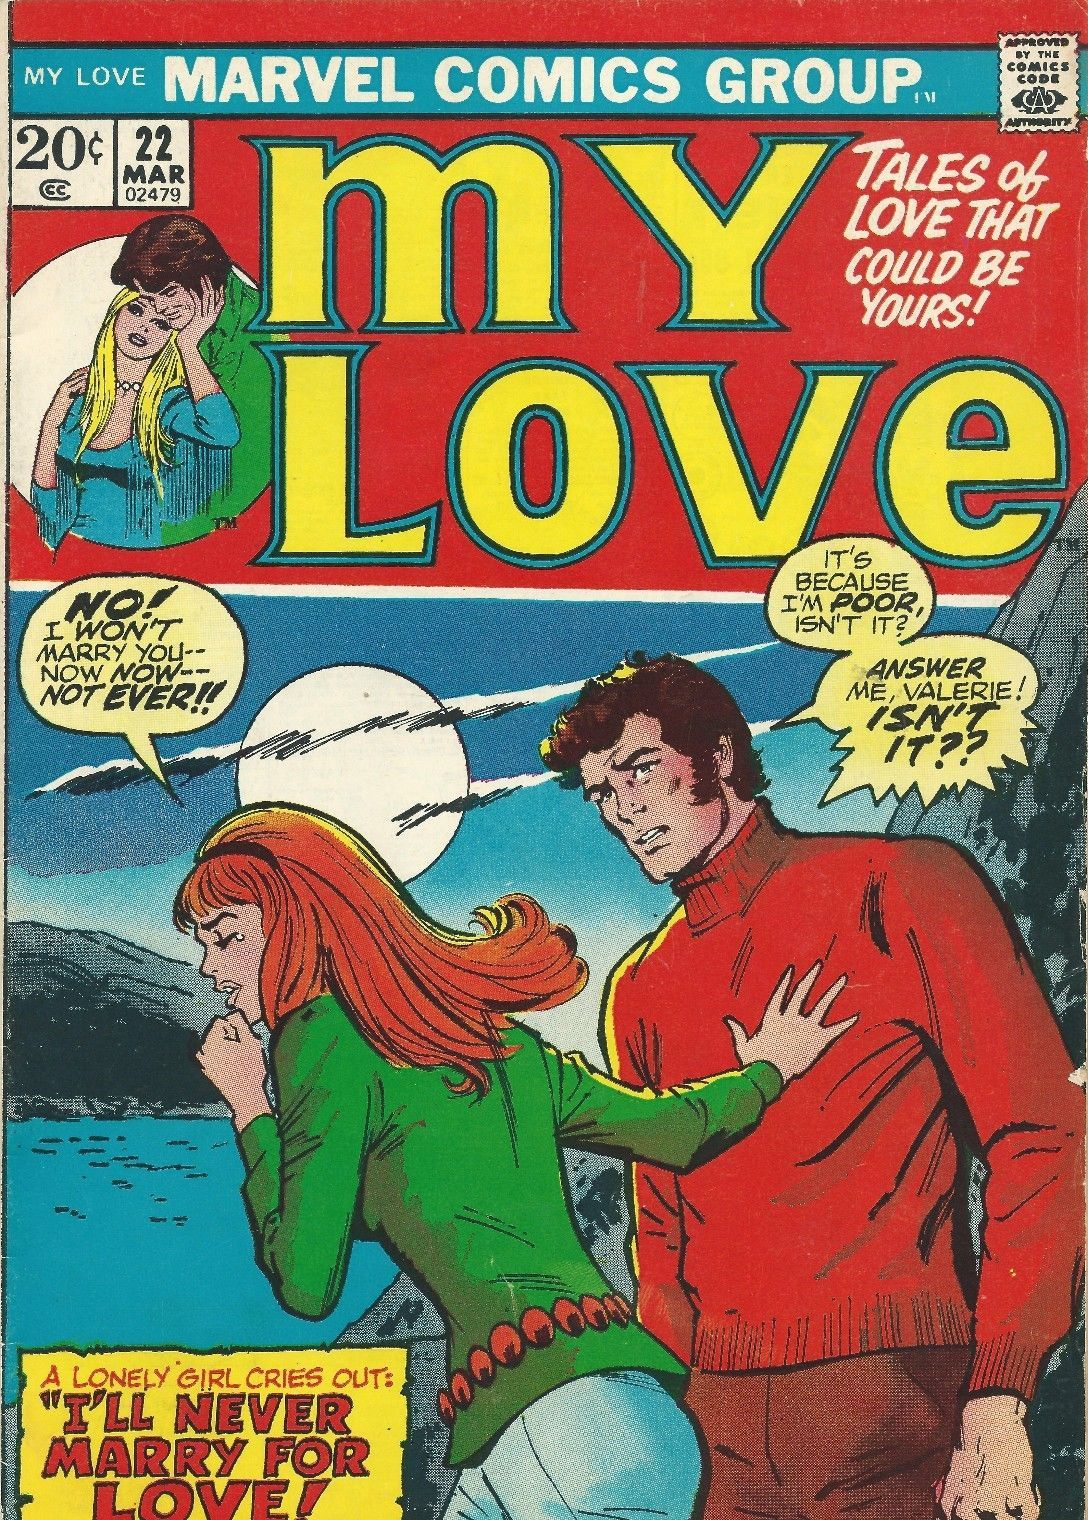 Image result for my love 22 comic book""